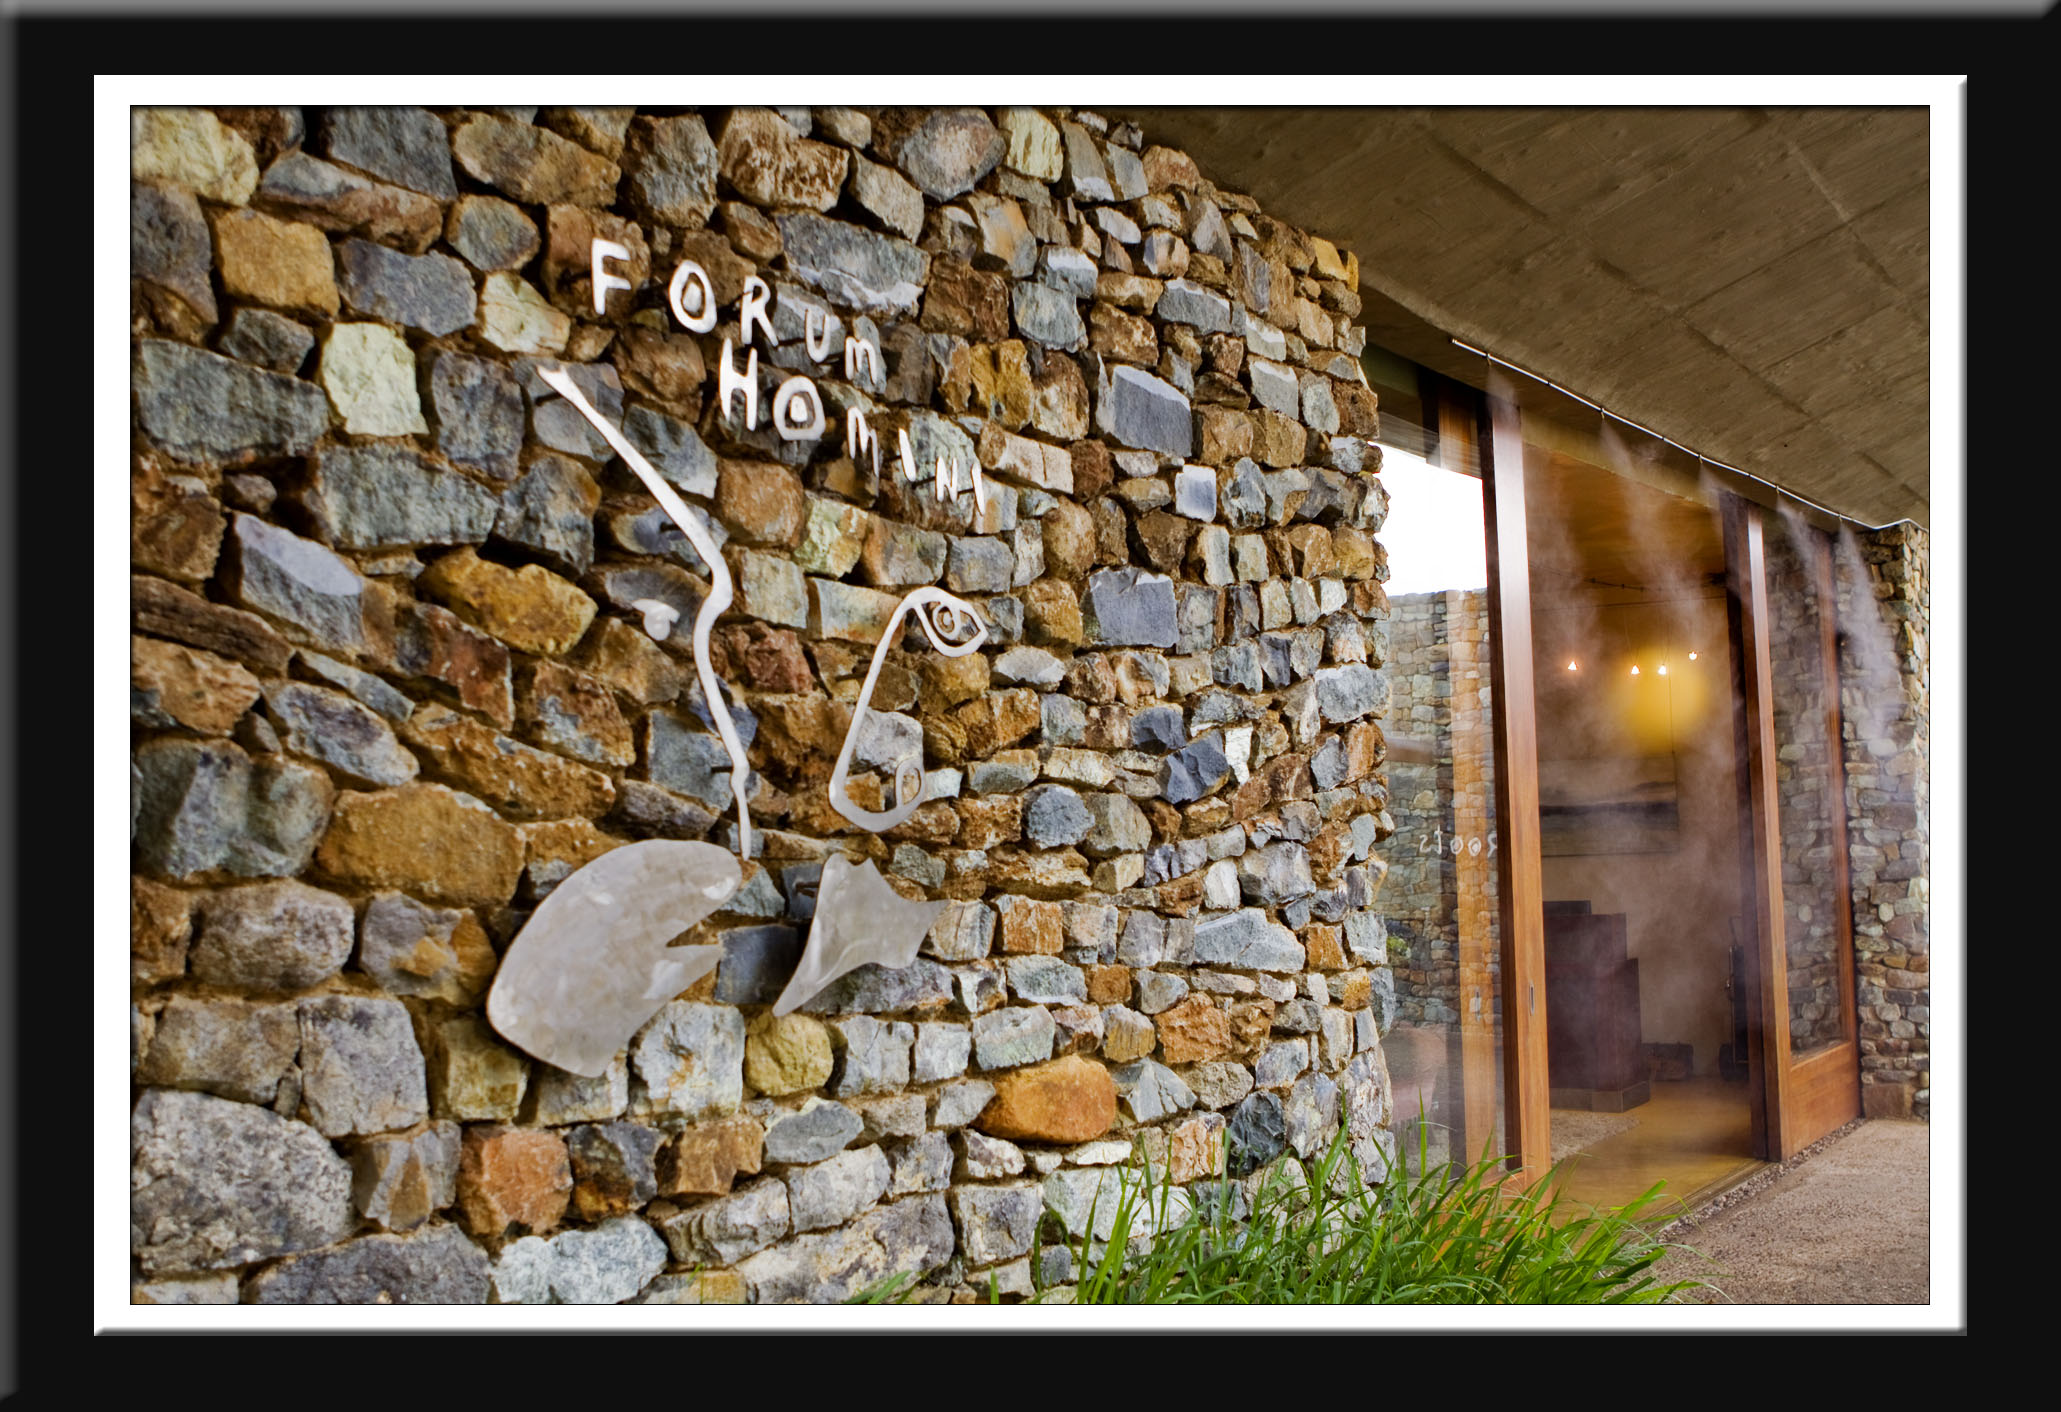 REVIEW: FORUM HOMINI HOTEL & ROOTS RESTAURANT